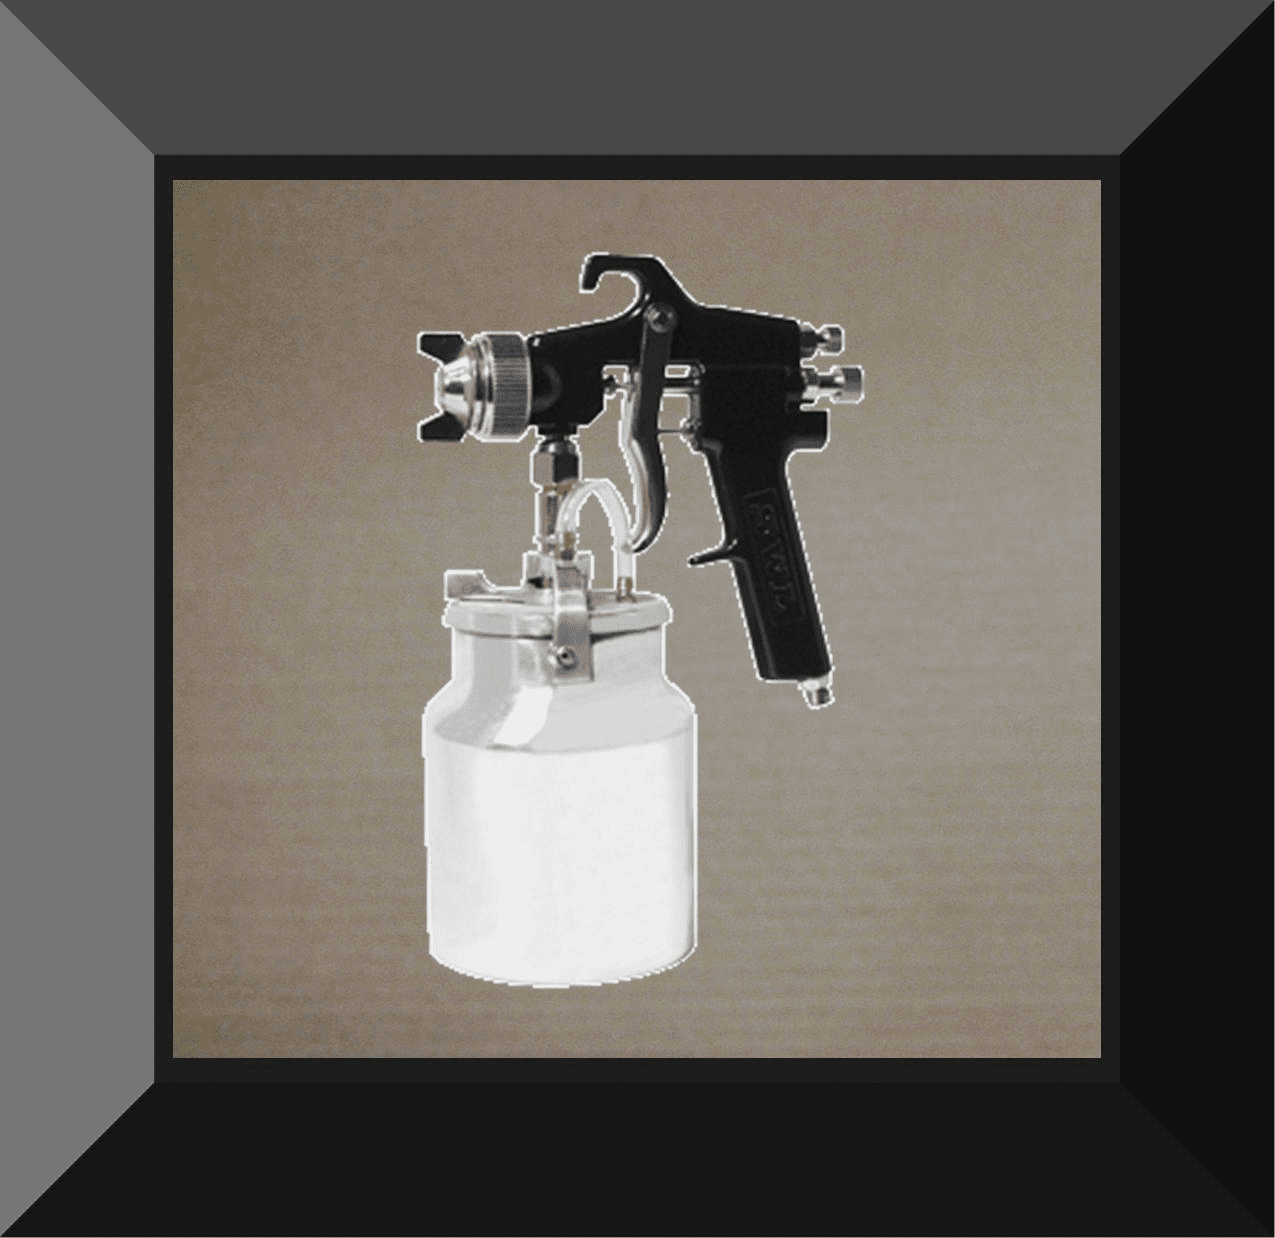 TTC-19418 Vaper Siphon Feed Production Spray Gun 1.8mm Tip & Nozzle